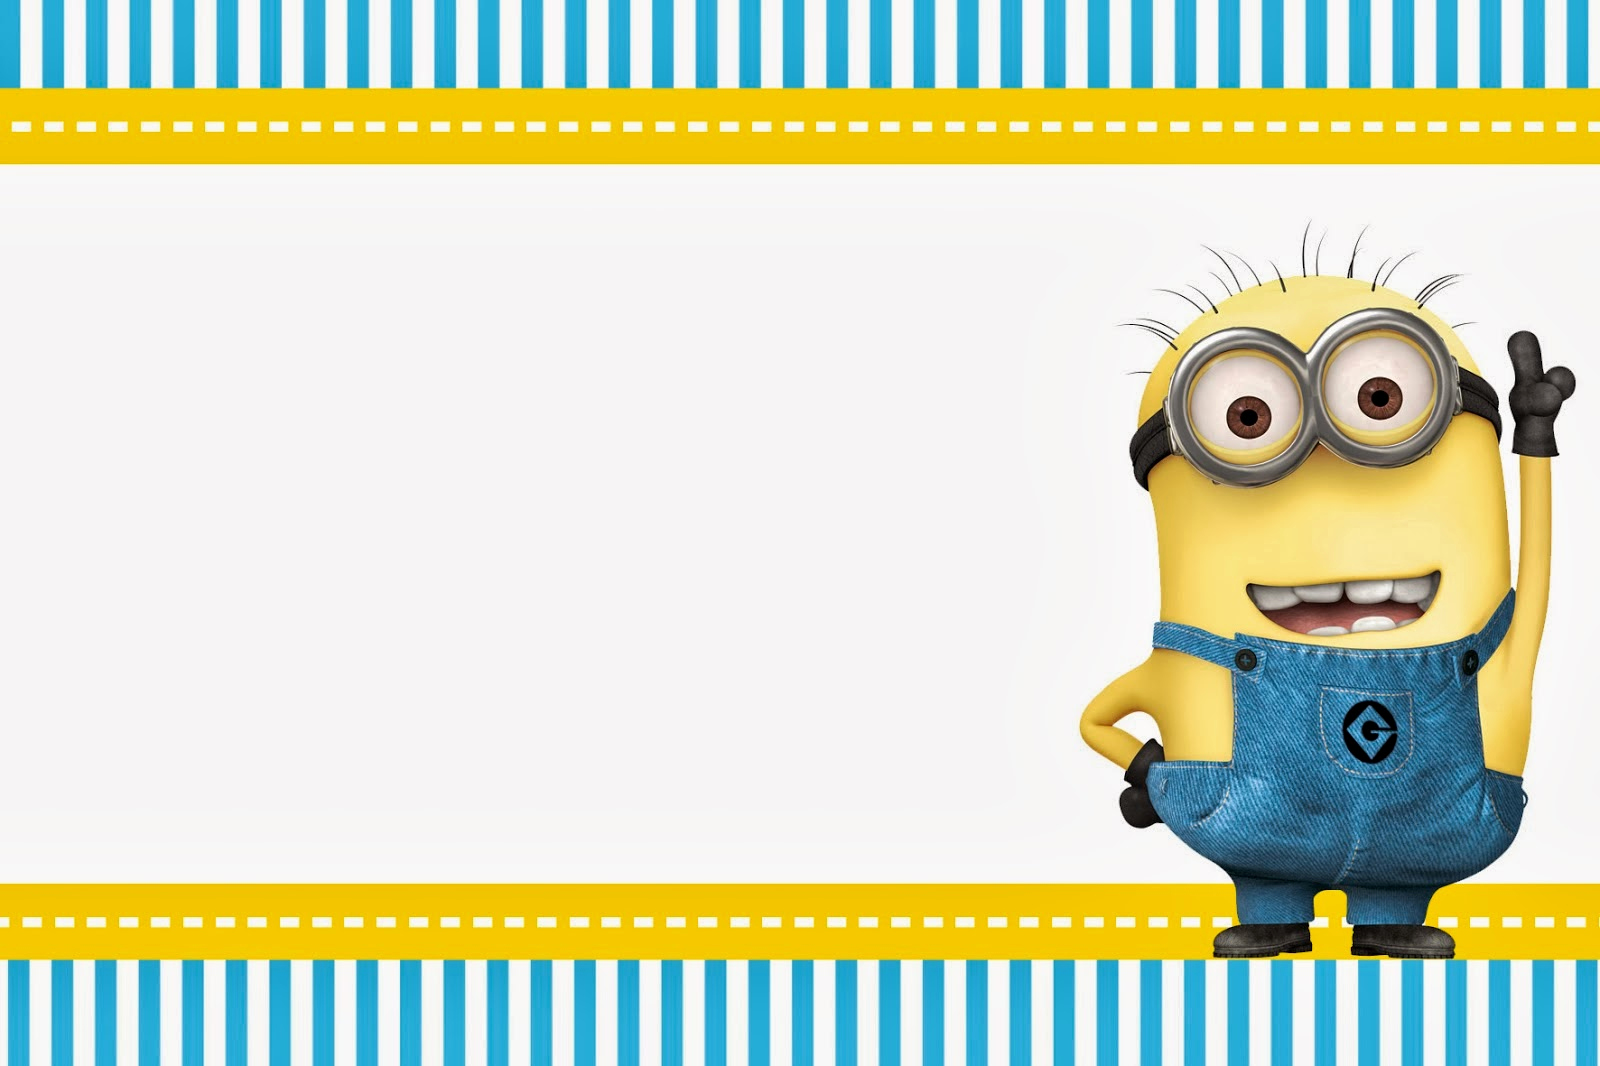 Minions Birthday Invitation Cards Awesome Despicable Me Invitations and Party Free Printables